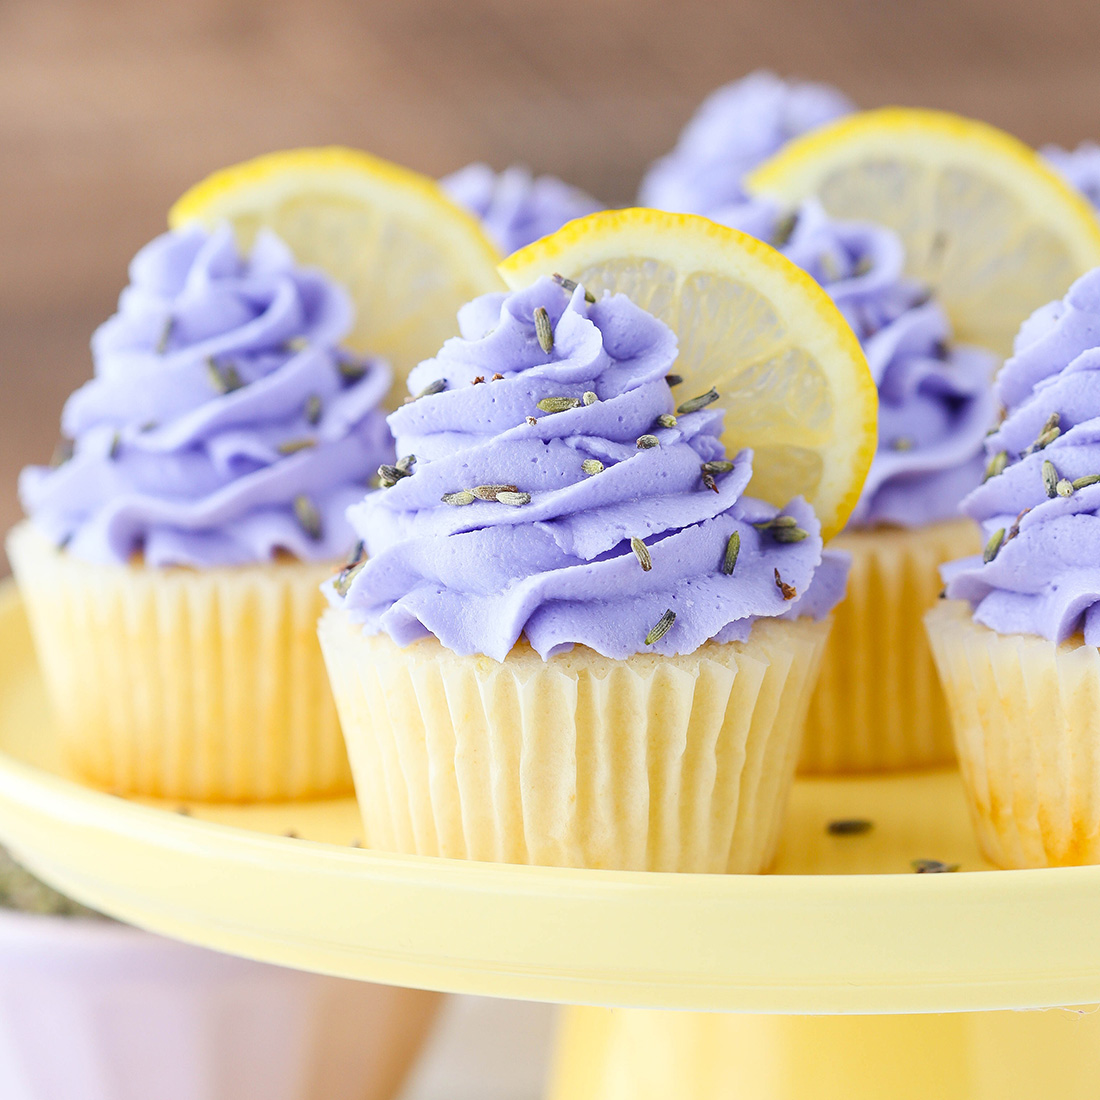 Lemon Lavender Cupcakes The Cake Blog